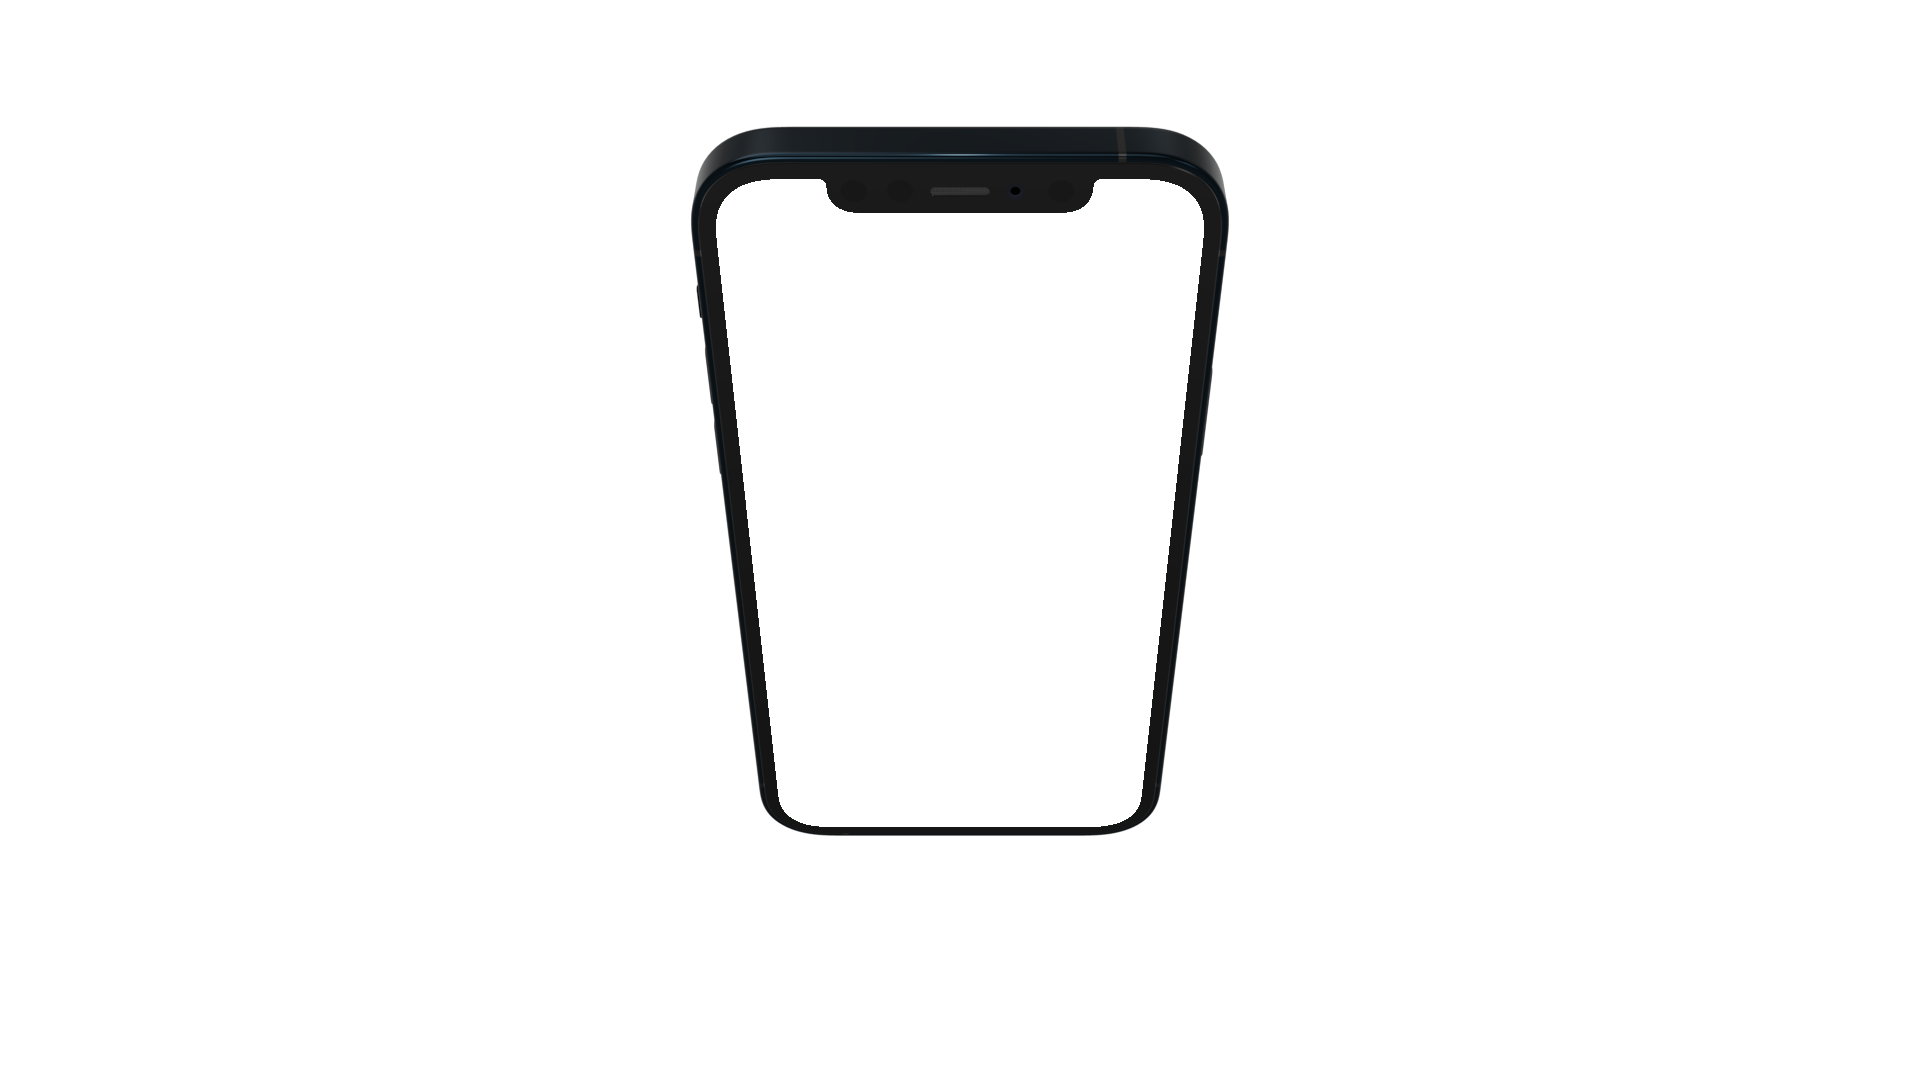 iPhone 12 PNG seen from the top